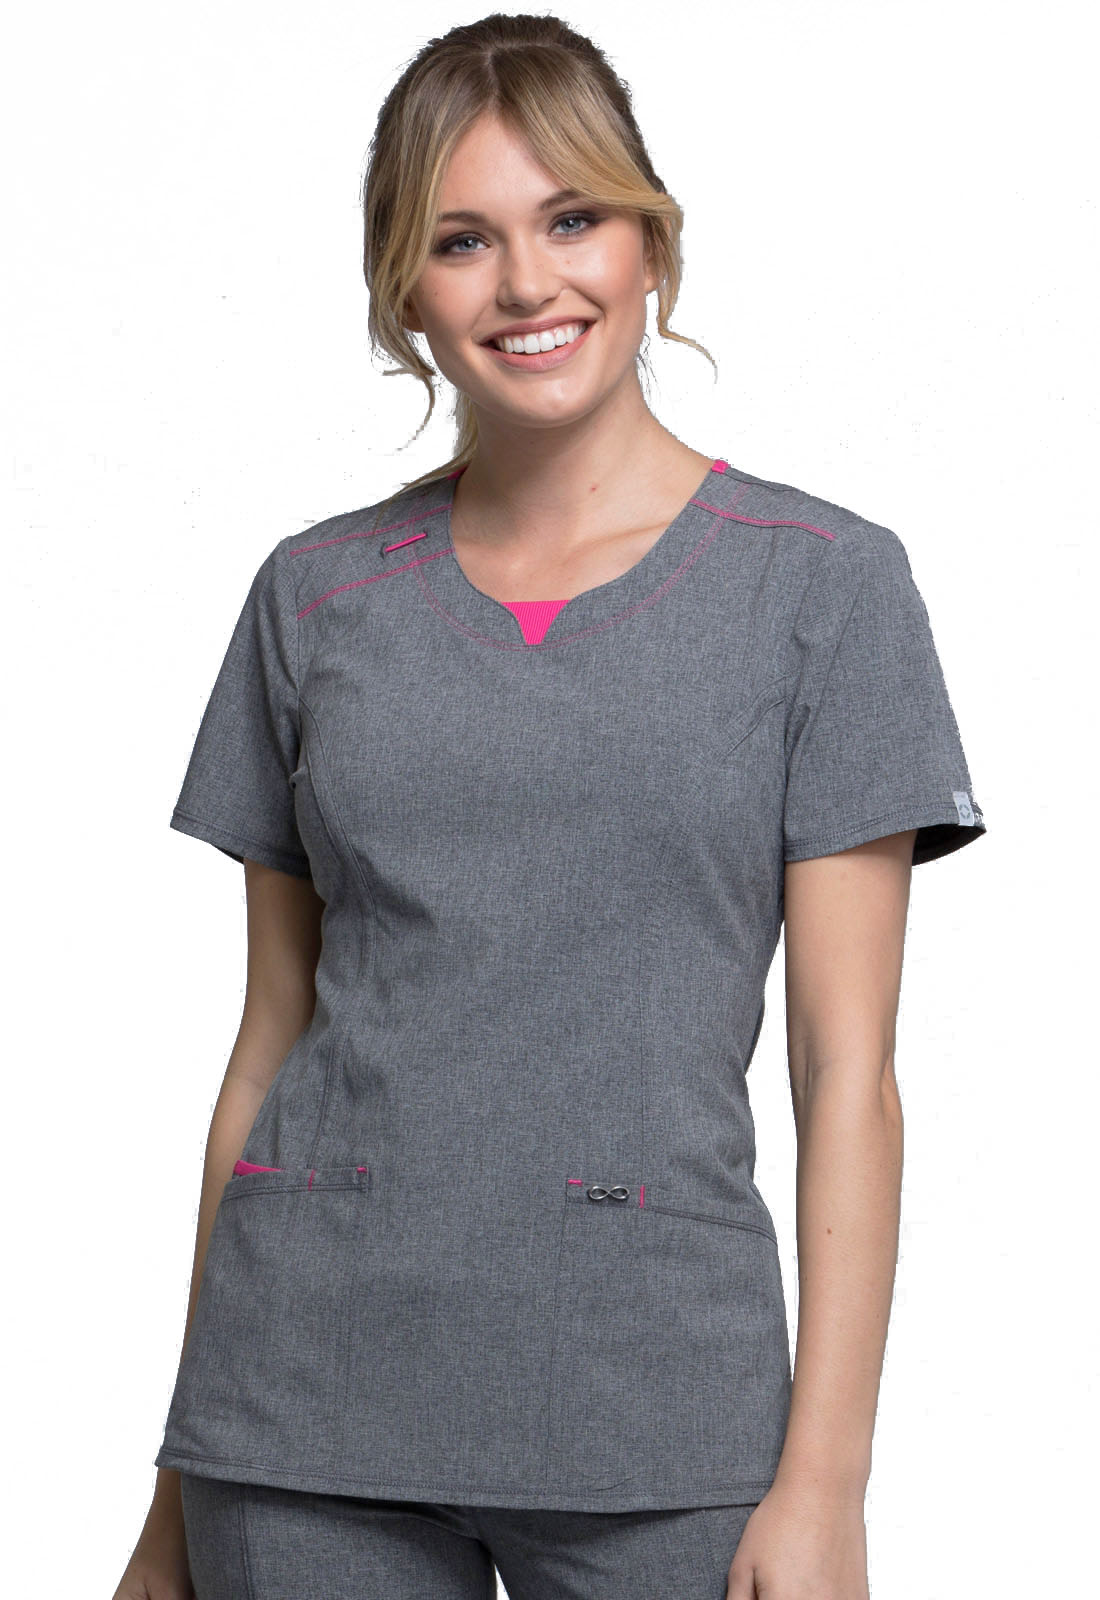 long cherokee itm womens knit tee by scrubs infinity cips s sleeve women medical uniforms